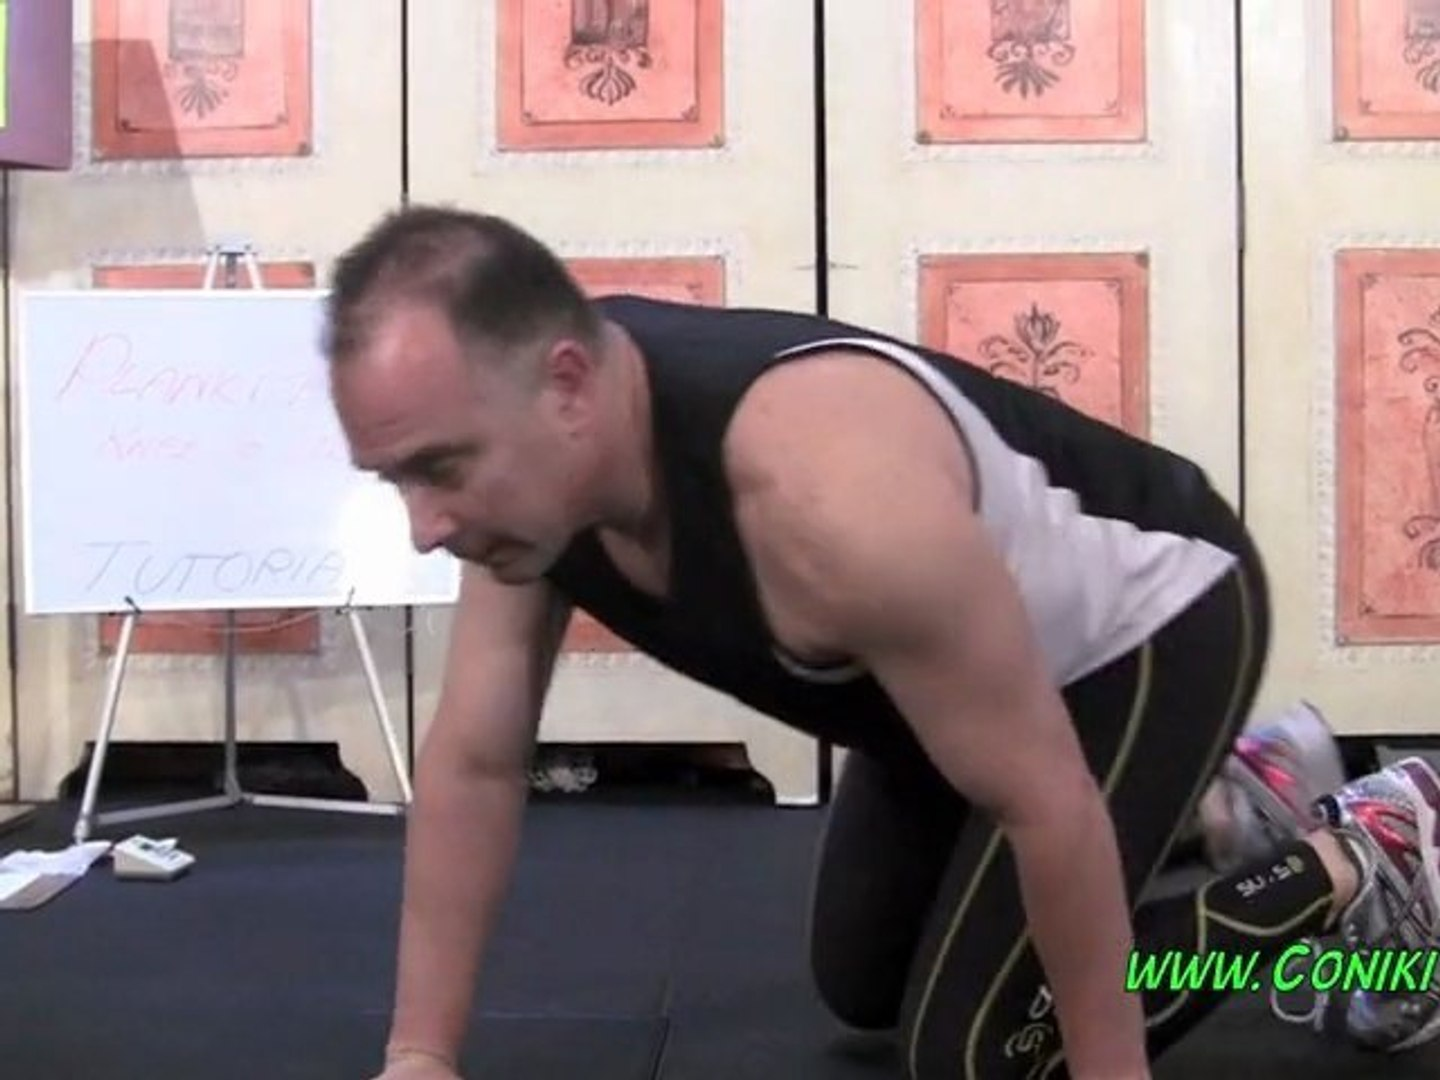 TUTORIAL PLANK PUSH UP KNEE TO ELBOW HOW TO